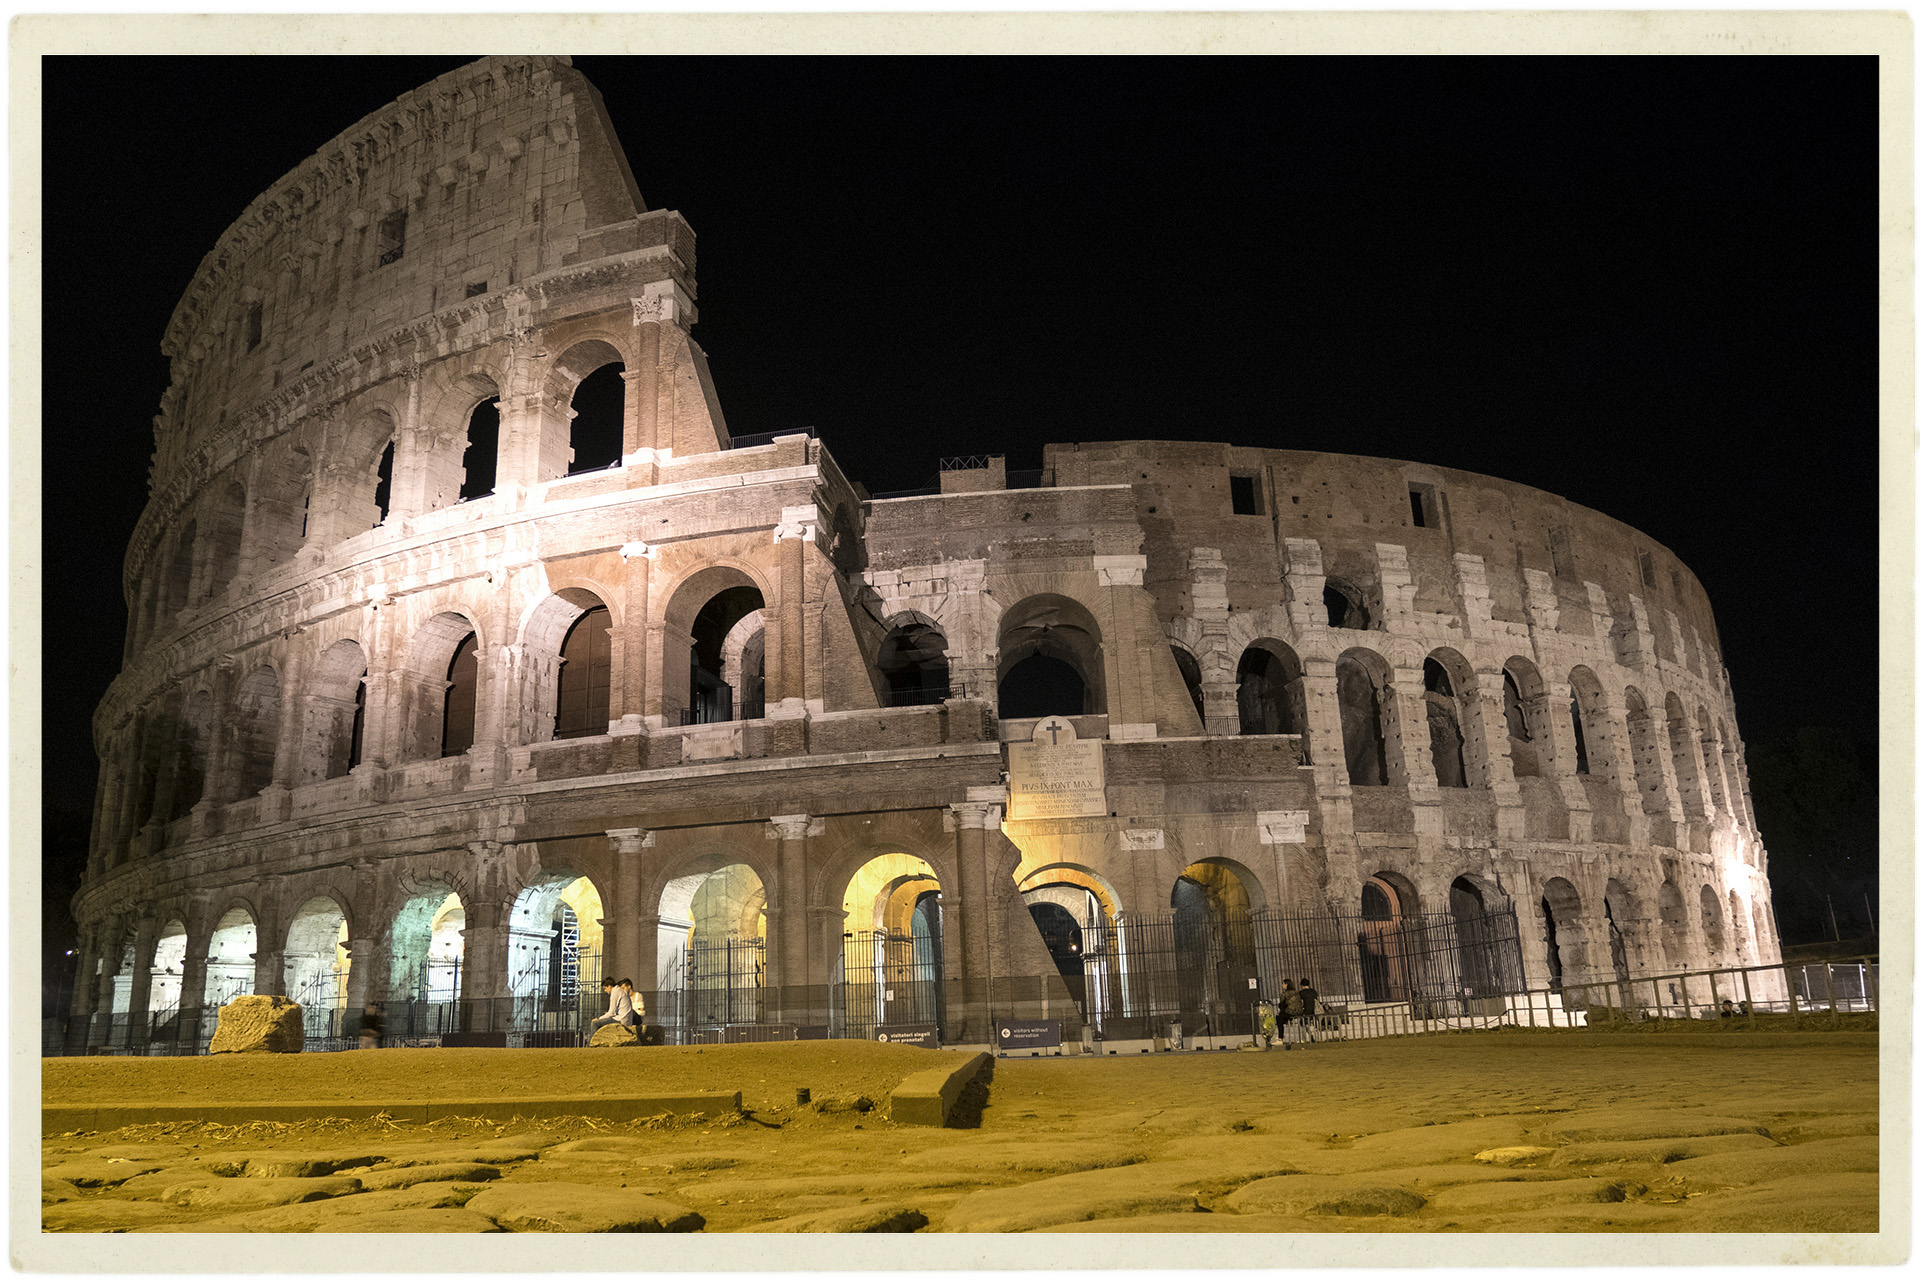 Roman ruins are most beautiful at night.